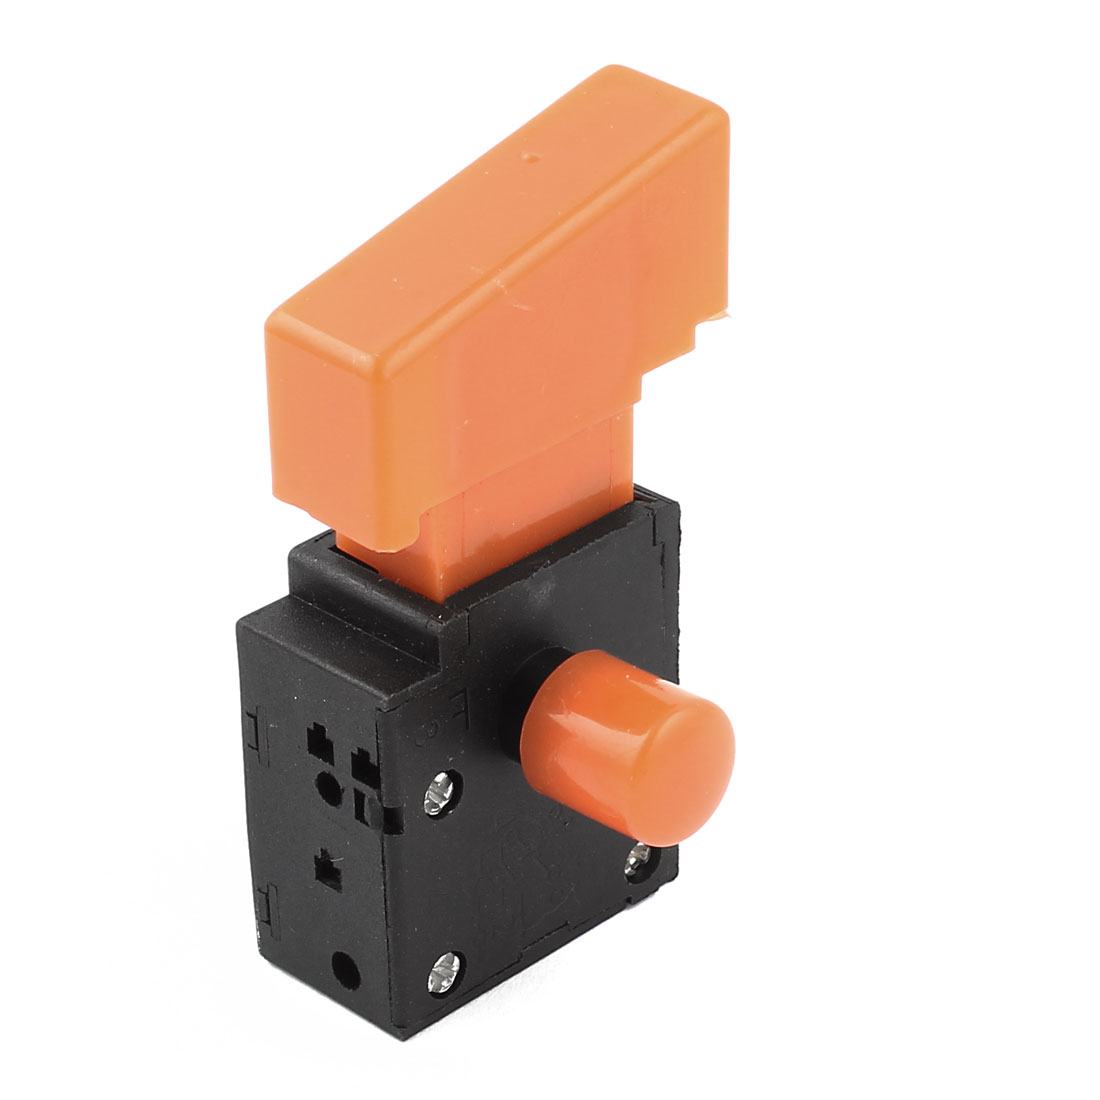 Replacement AC 250V 4A DPST Select Locking NO Normally Open Plastic Electric Tool Push Button Trigger Switch